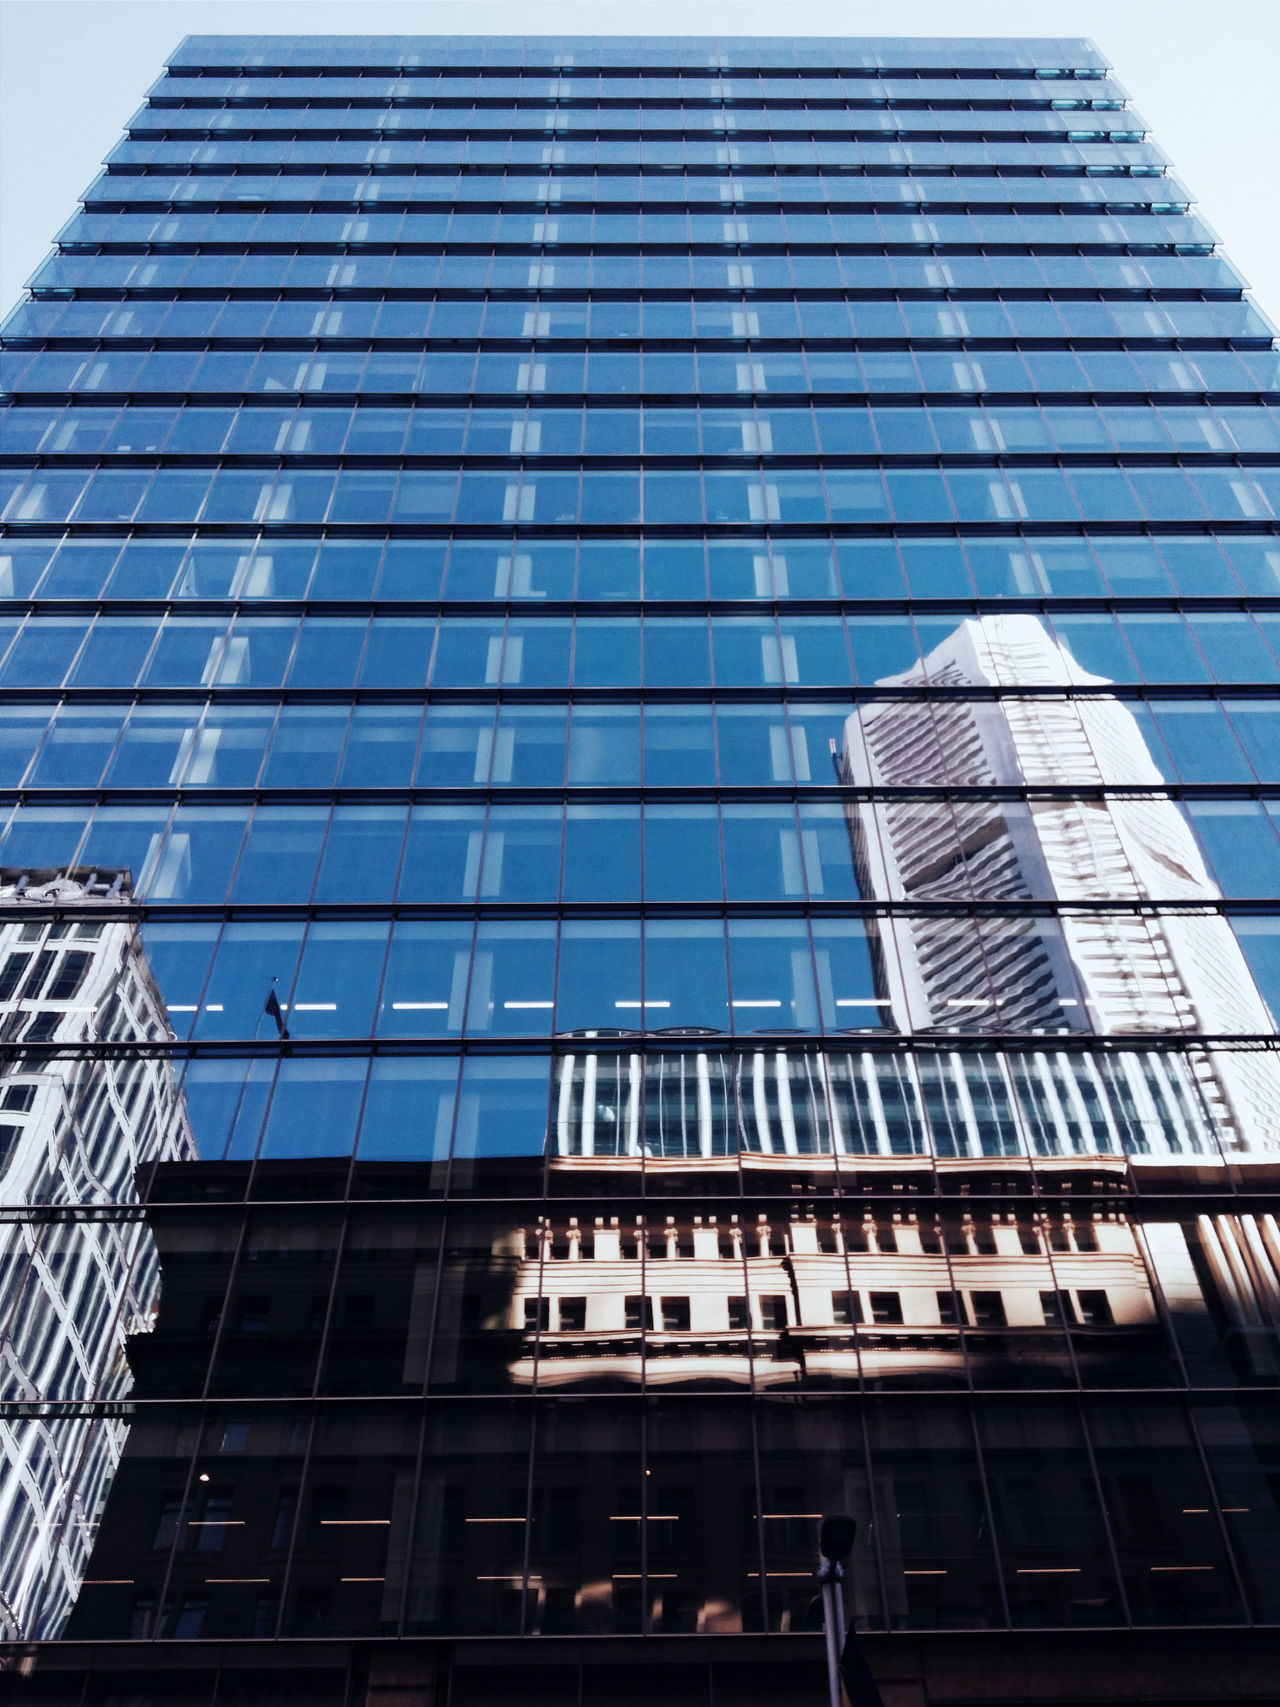 Buildings Windows Architecture_collection Street Photography Architecture Streetphotography Building Exterior Urbanphotography Building Facades Facade Building Urban Geometry Glass - Material Window Reflections Glass Reflection Glass Window View